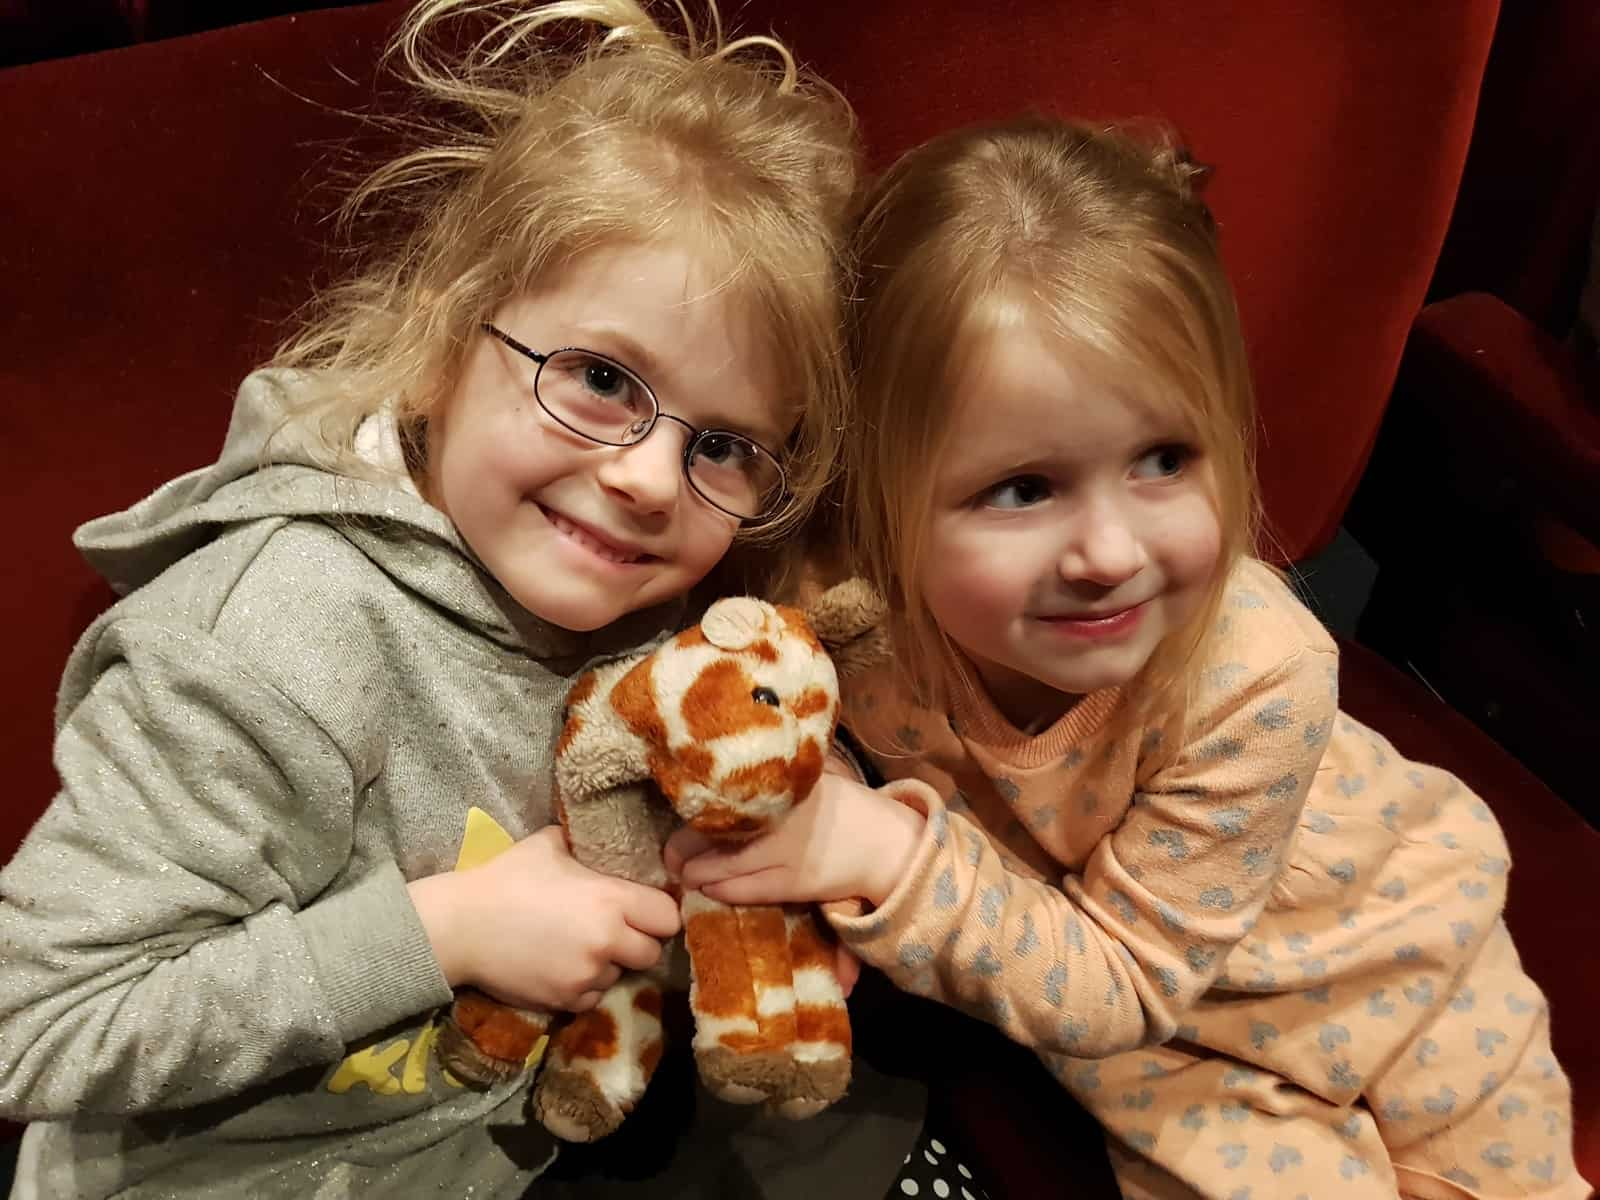 Two little girls and a toy giraffe waiting to watch The Jungle Book at Malvern Theatres.